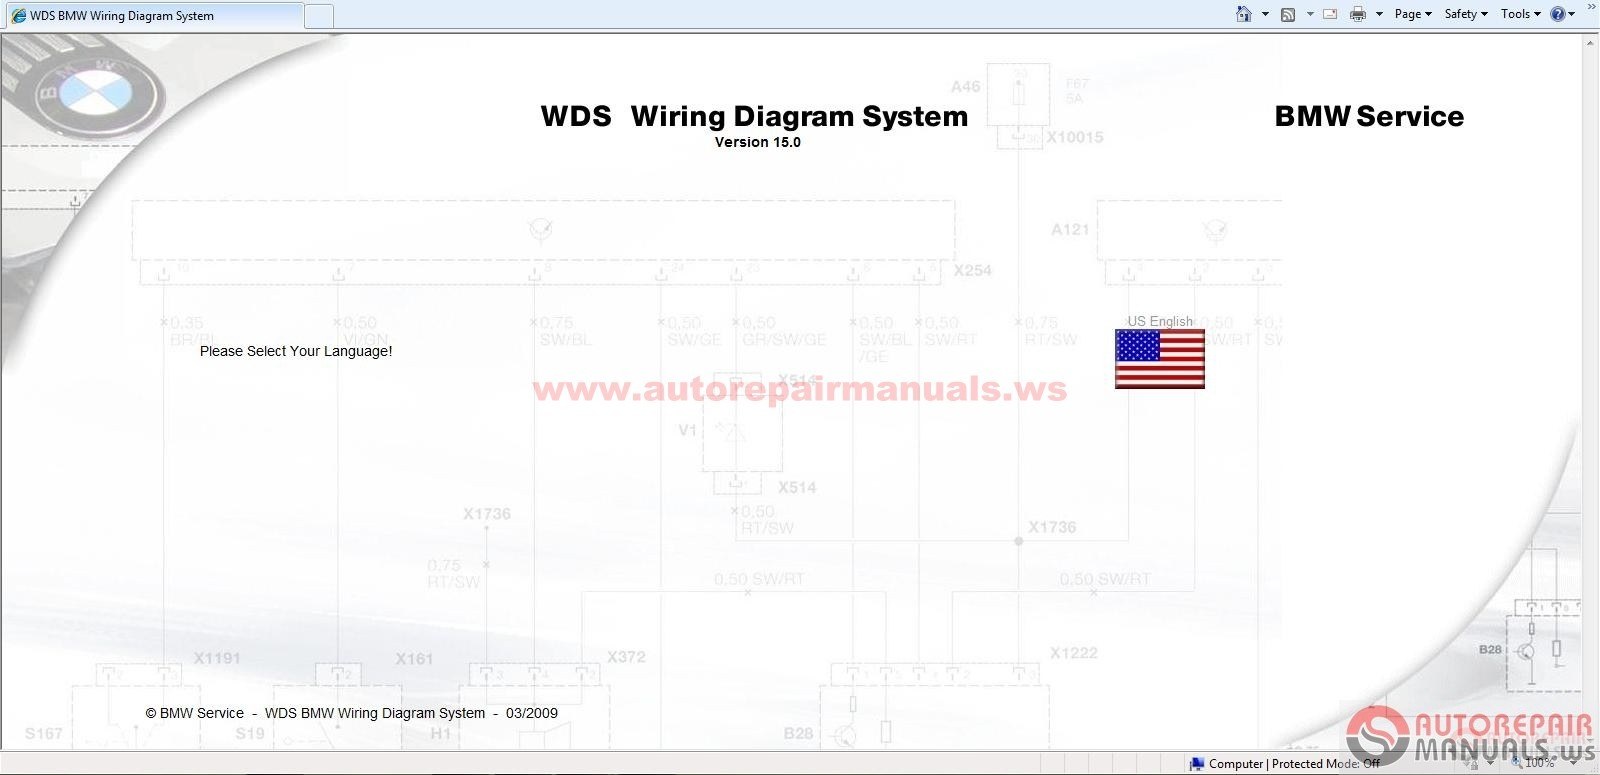 diagram wds wiring file gn95017 1998 BMW 528I Parts Diagrams bmw wds v15 and mini wds v7 wiring